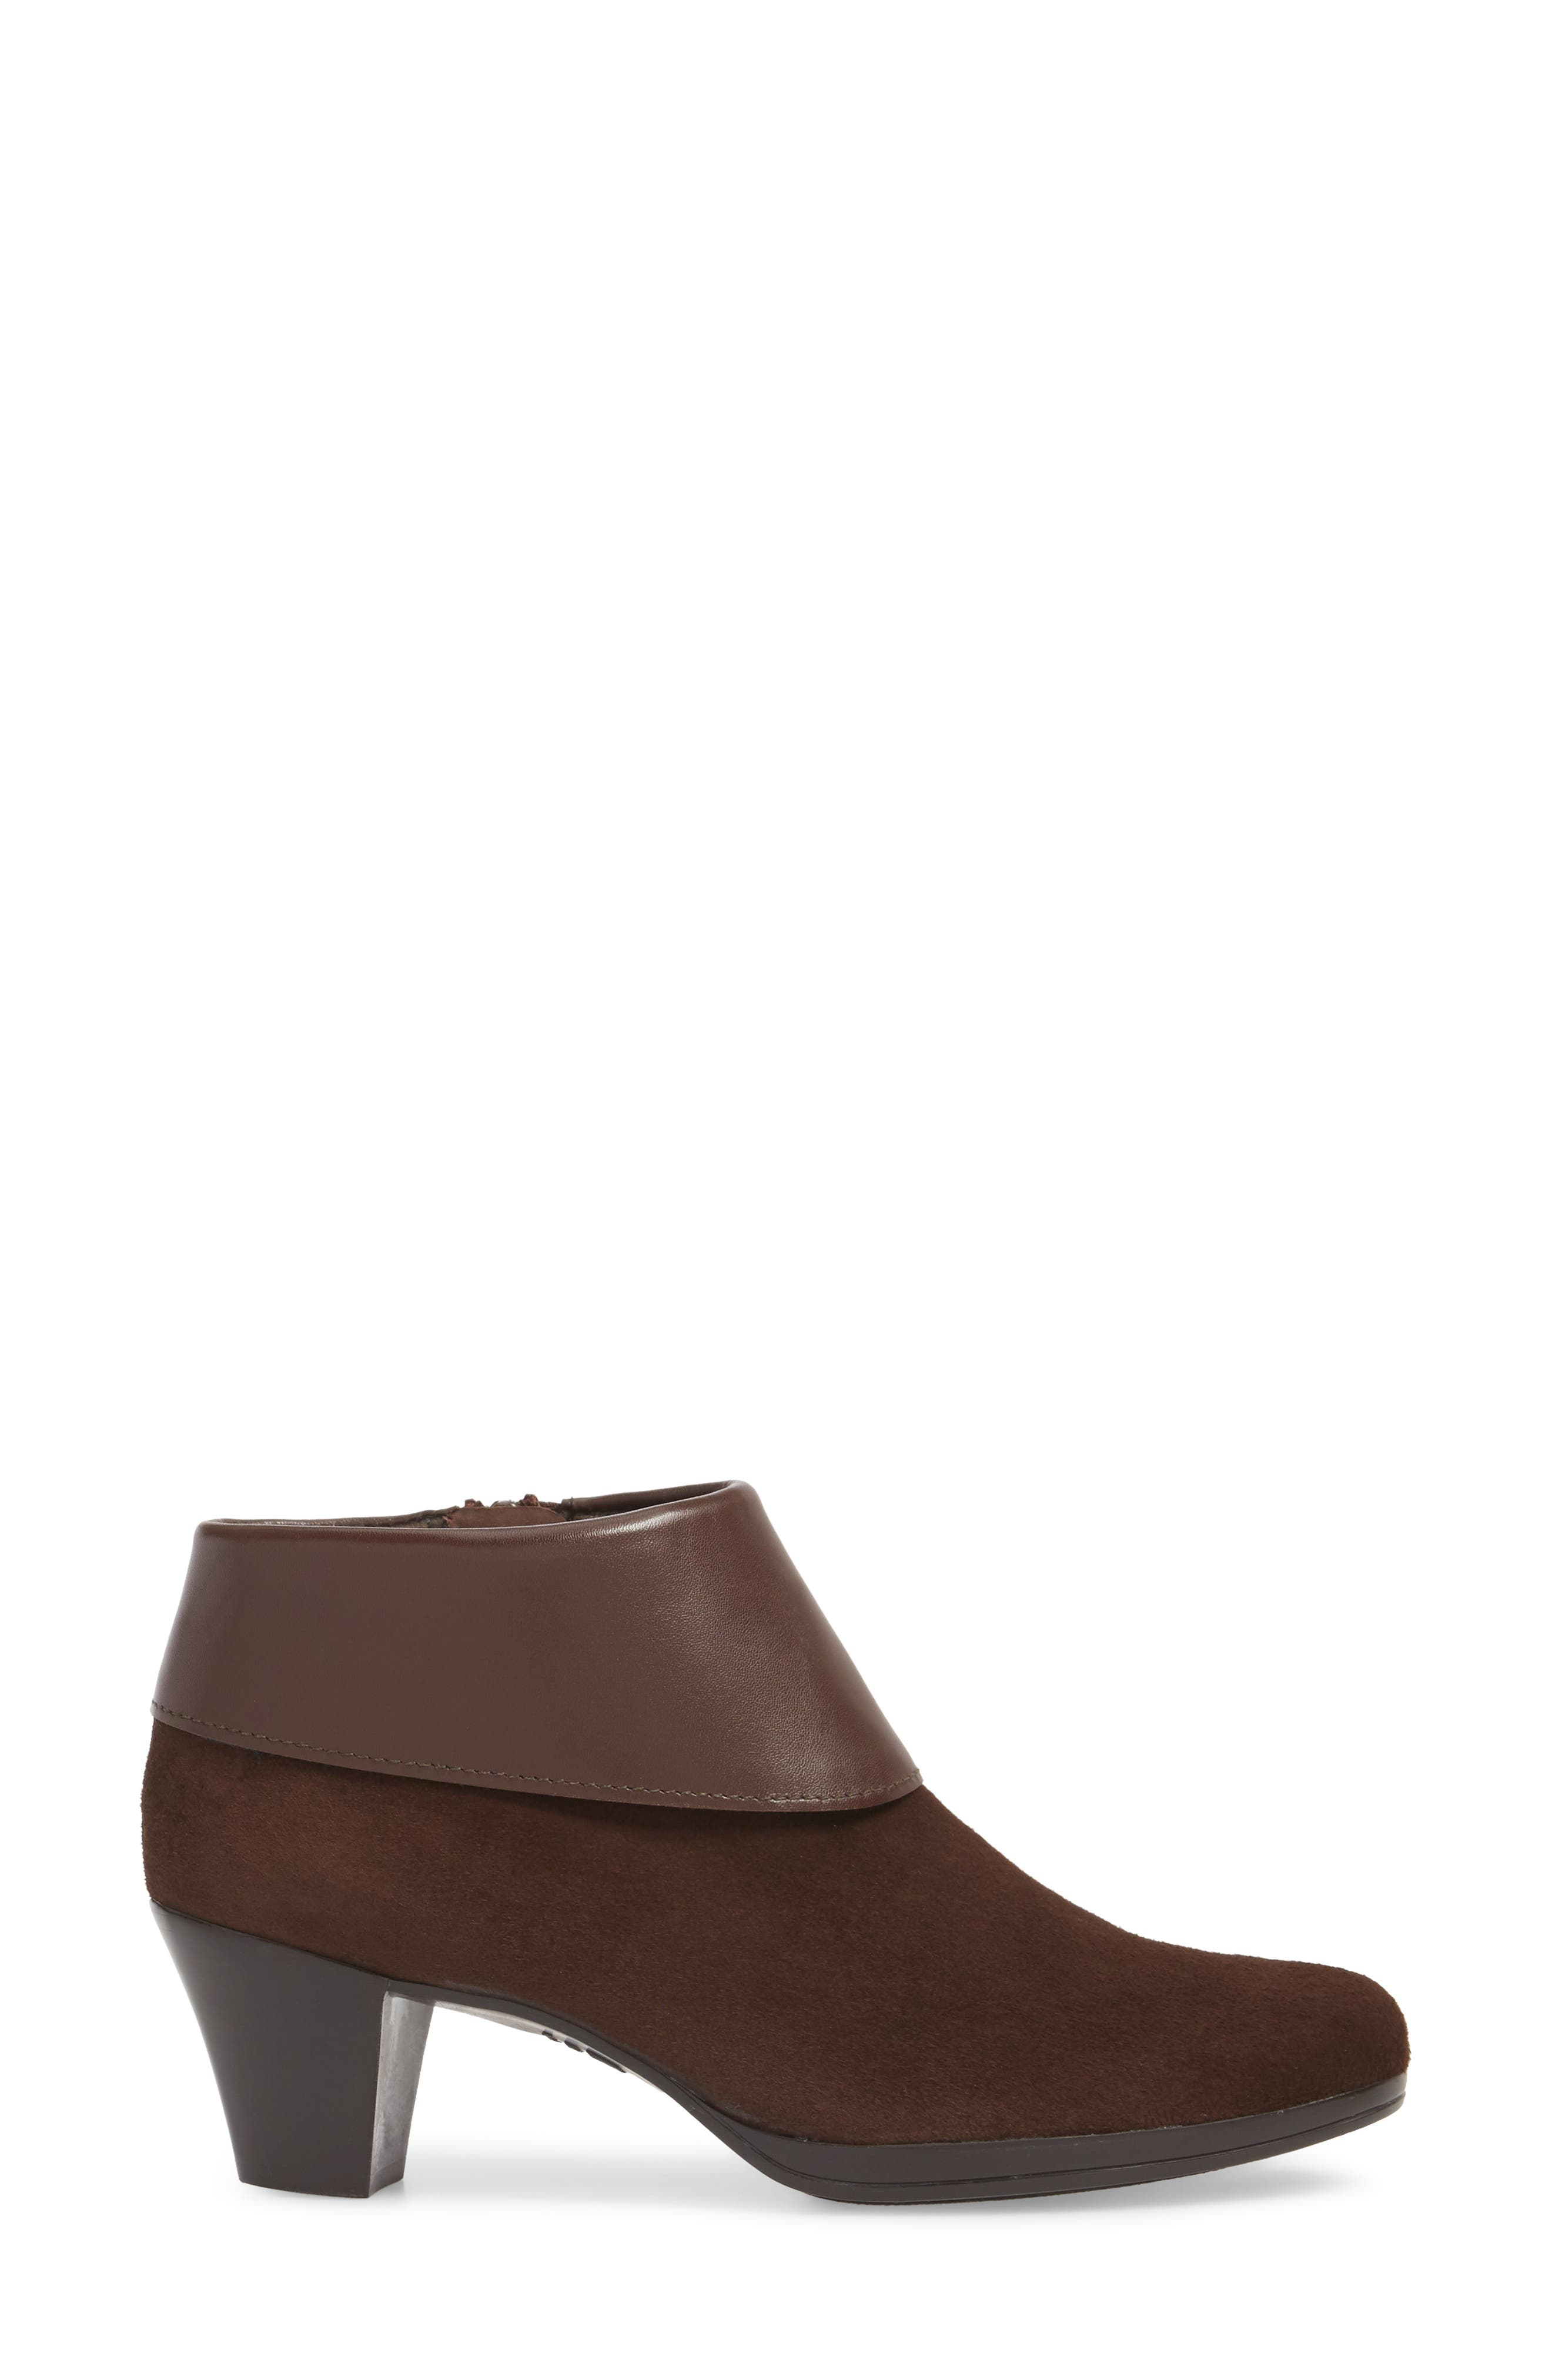 MUNRO, Gracee Boot, Alternate thumbnail 3, color, CHOCOLATE LEATHER